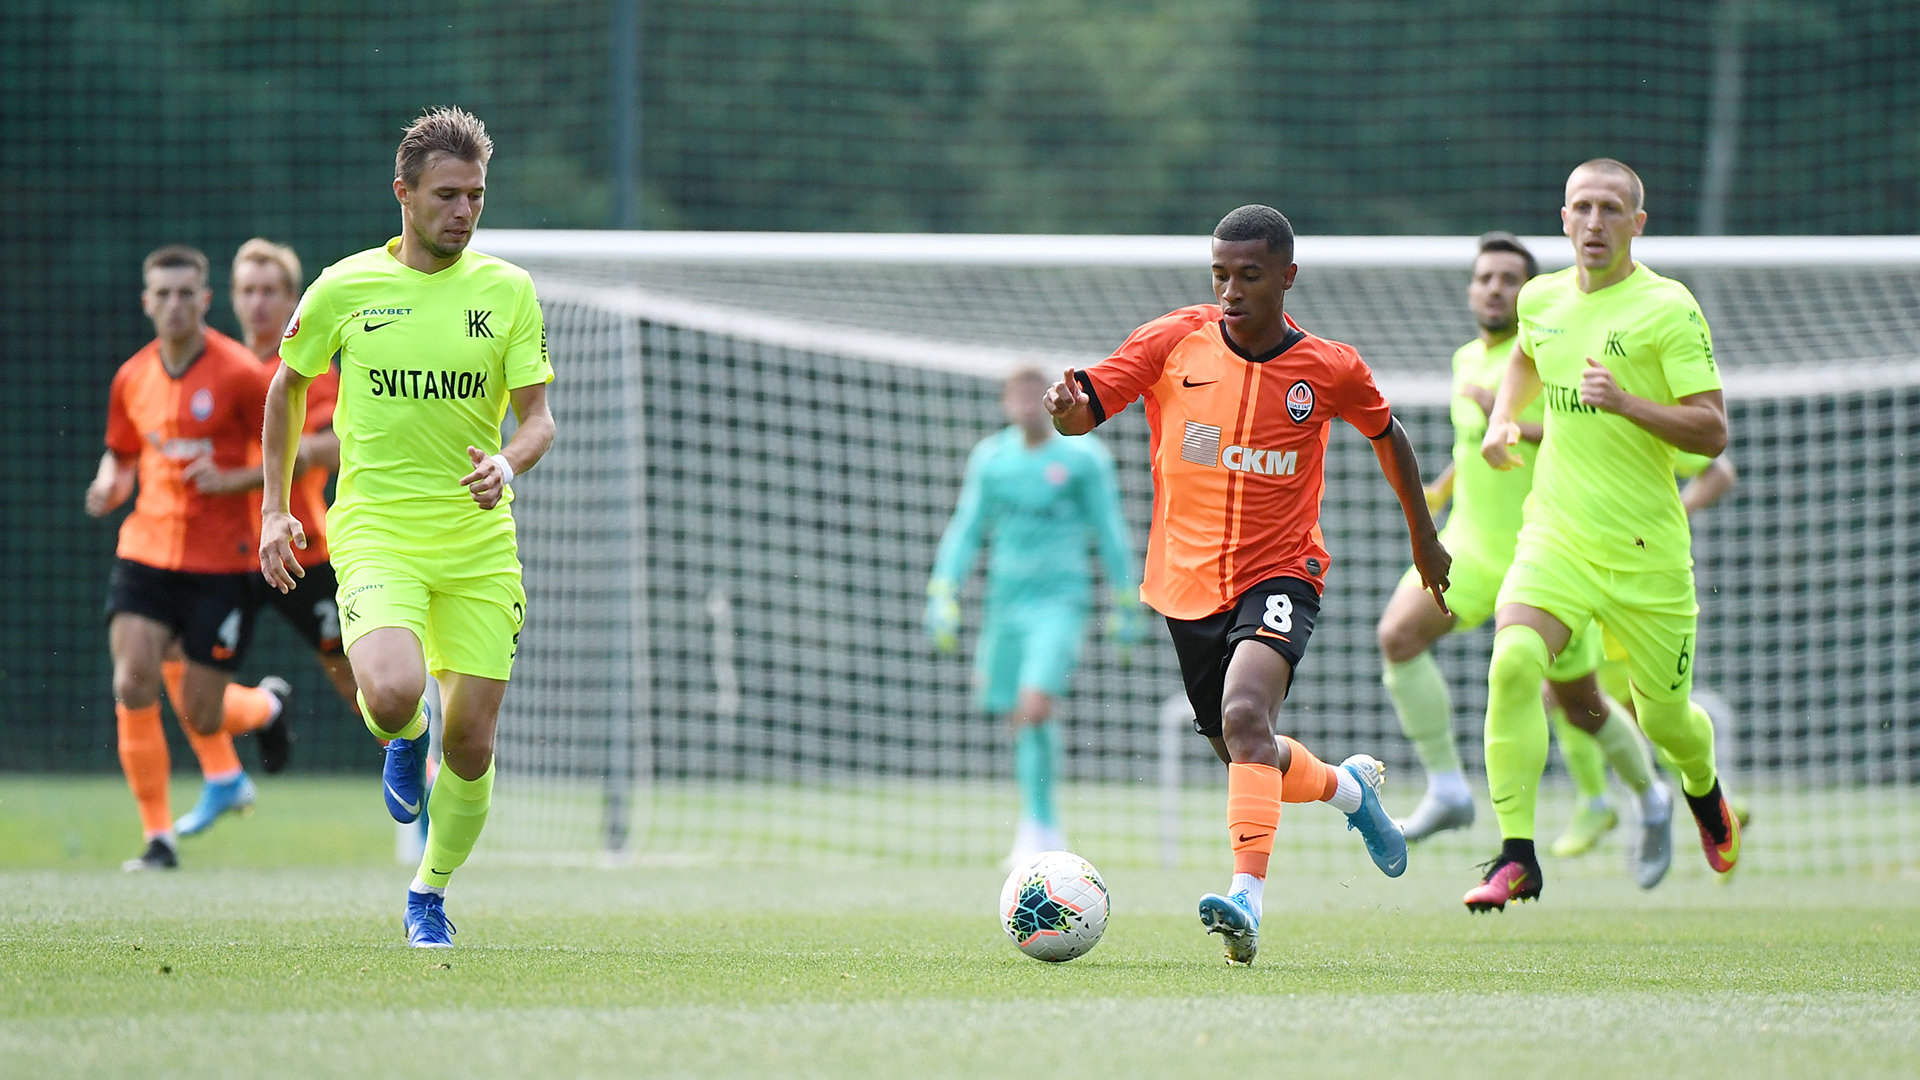 https://shakhtar.com/~/media/fcsd/news/2019/september/5_news/5_shakhtar-v-kolos/gal/dsc_6846.jpg?1568955141117